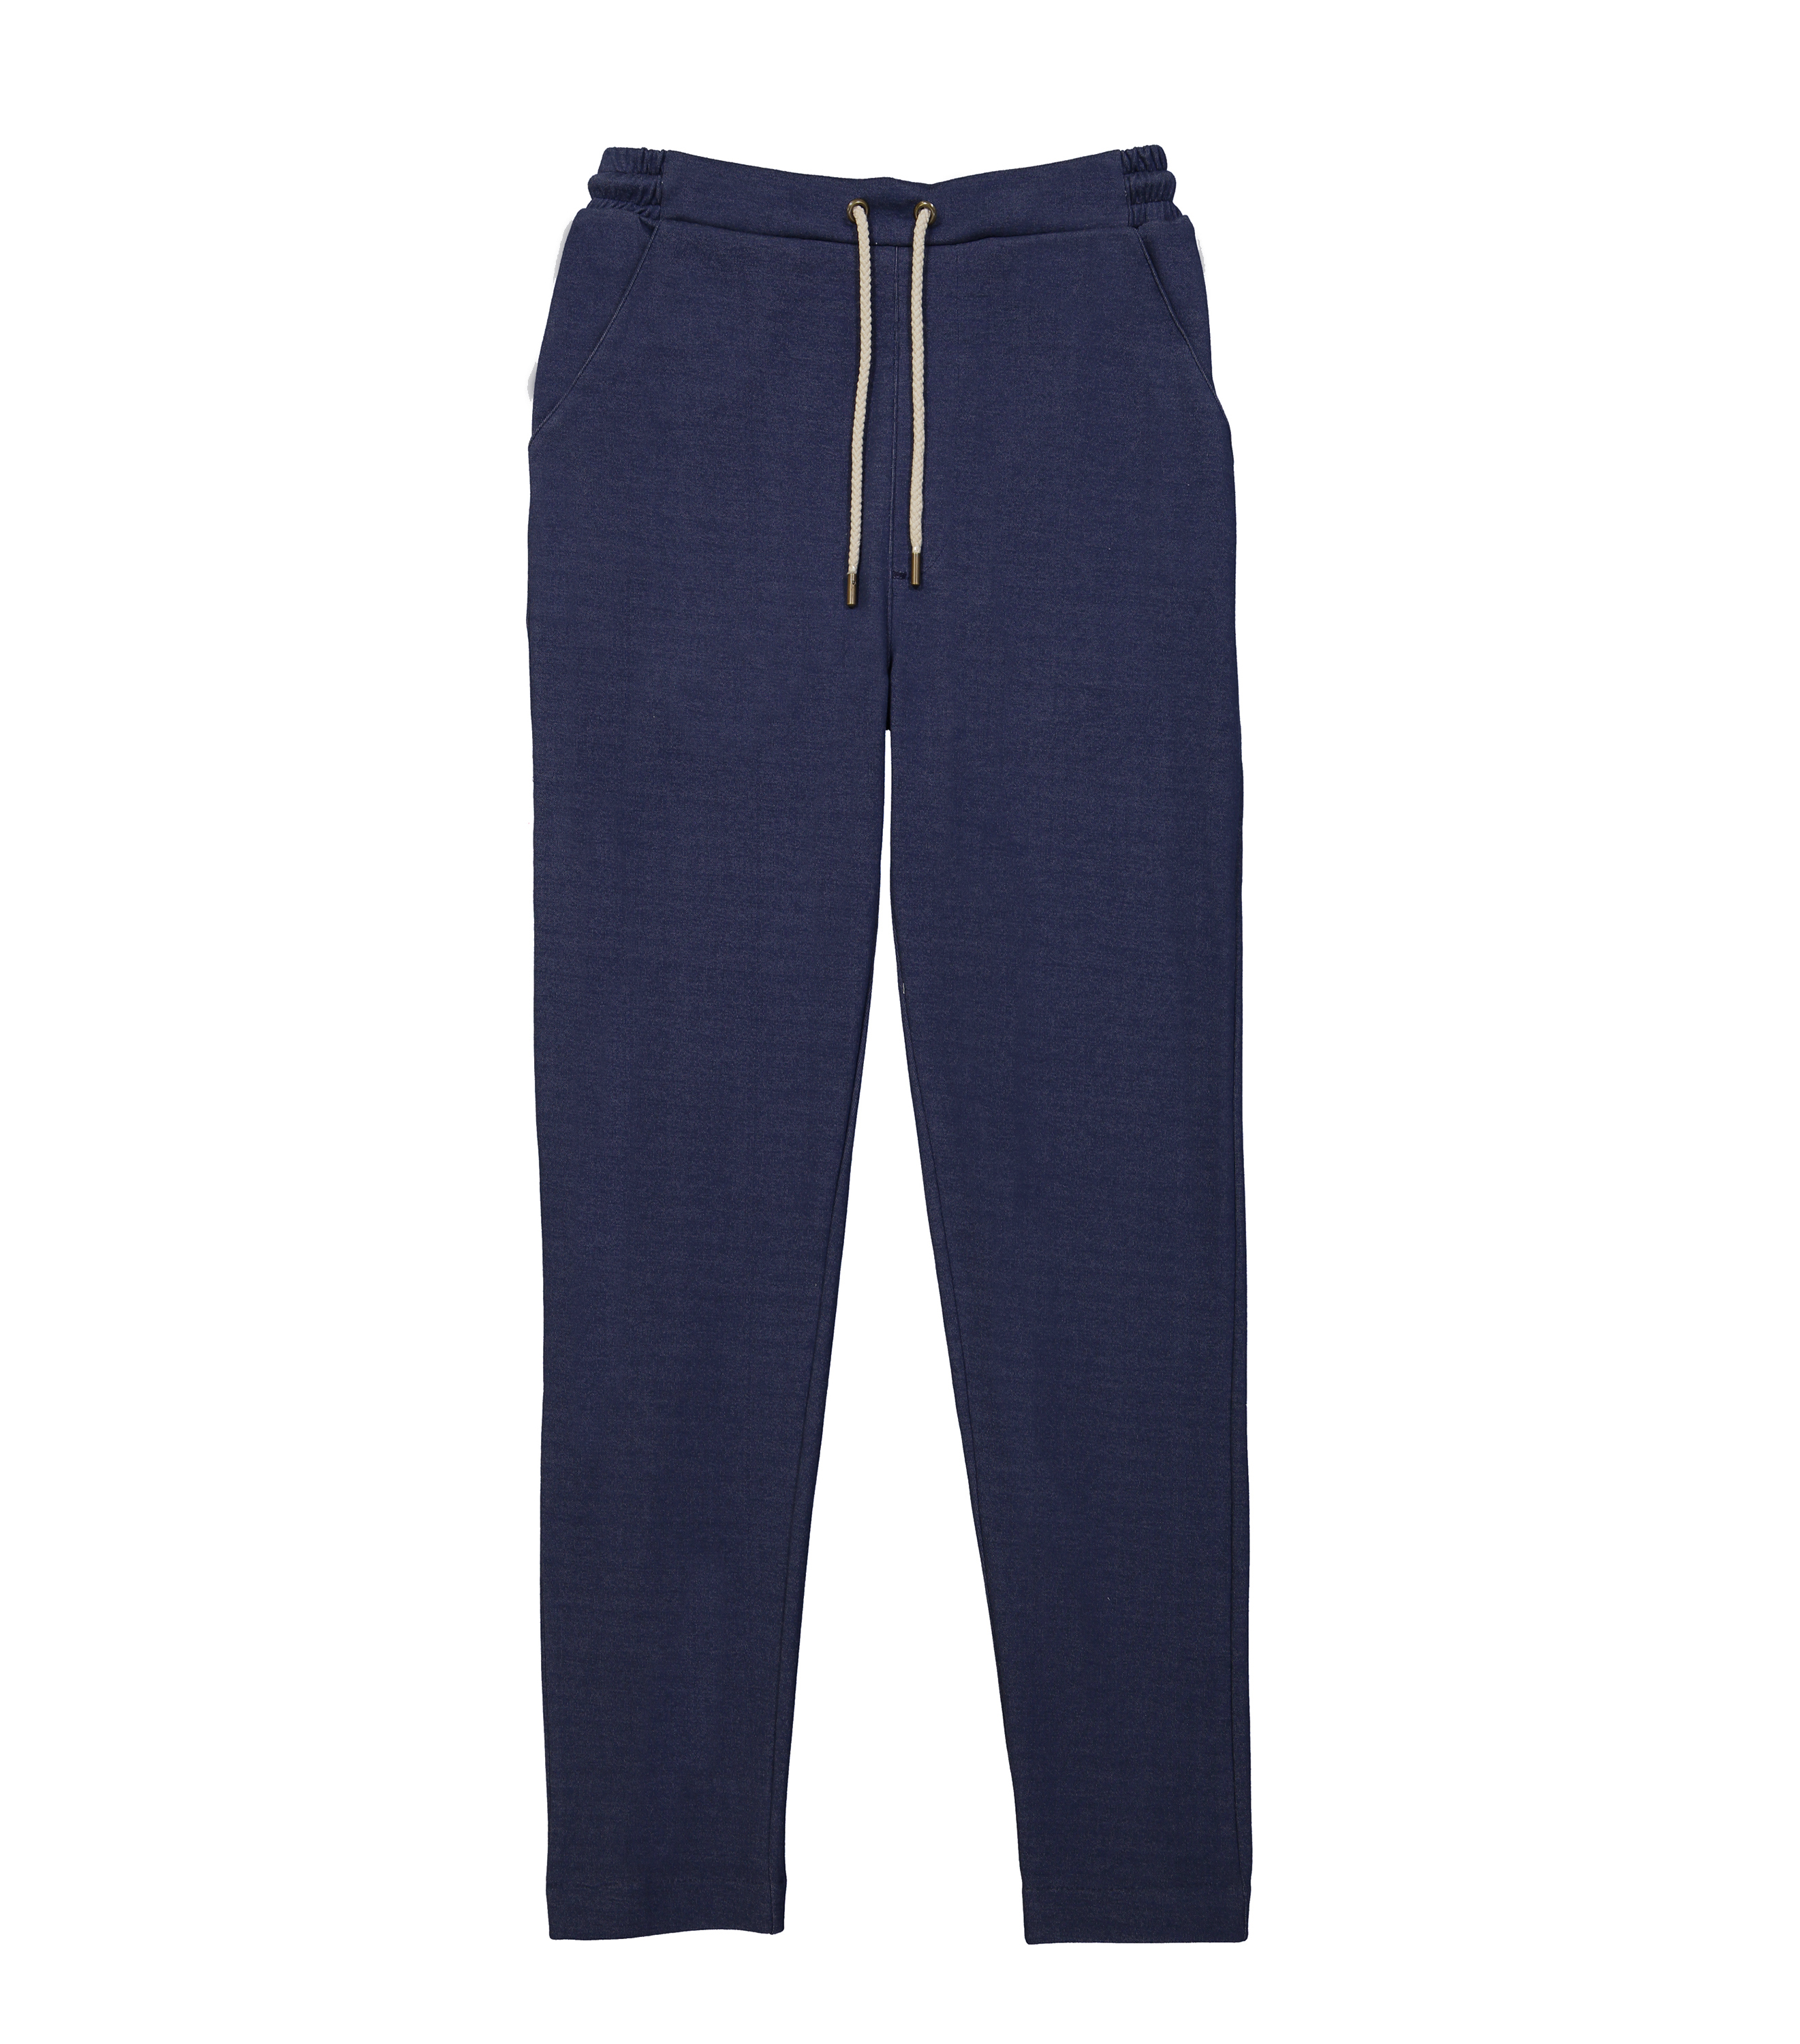 PANTS GN.DIM05 - Dark blue